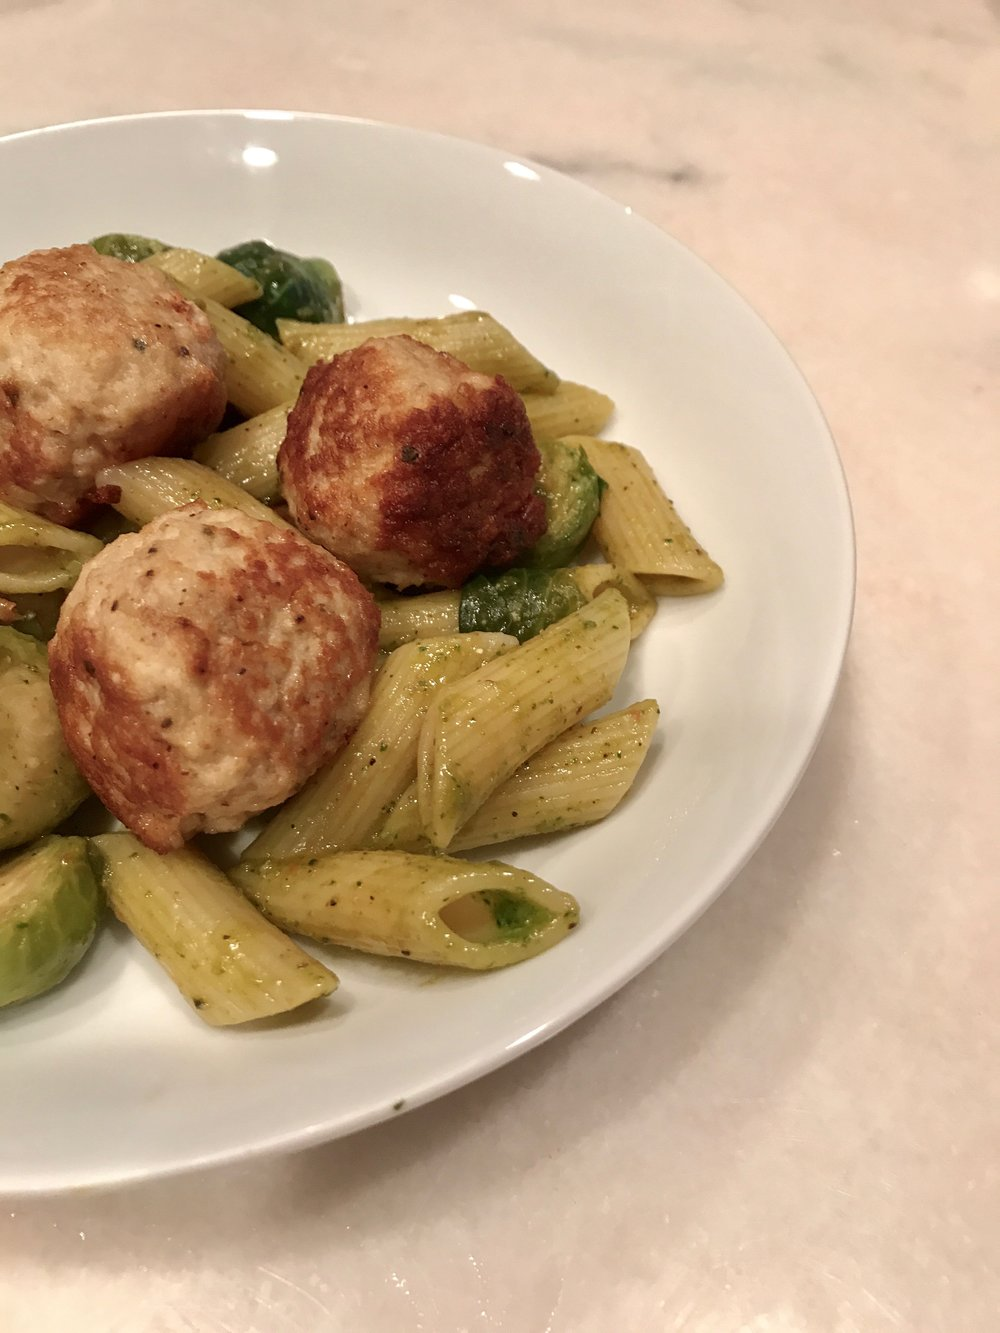 Quick & Easy Week Night Dinner - Homemade Turkey Meatballs, Casey Bonano RD LD, Dallas Nutritional Counseling #dallasnutritionalcounseling #balancedeating #homecooking #quickrecipes #easyrecipe #weeknightrecipe #carbfatpro #quickeasyrecipe #balancedeating #intuitiveeating